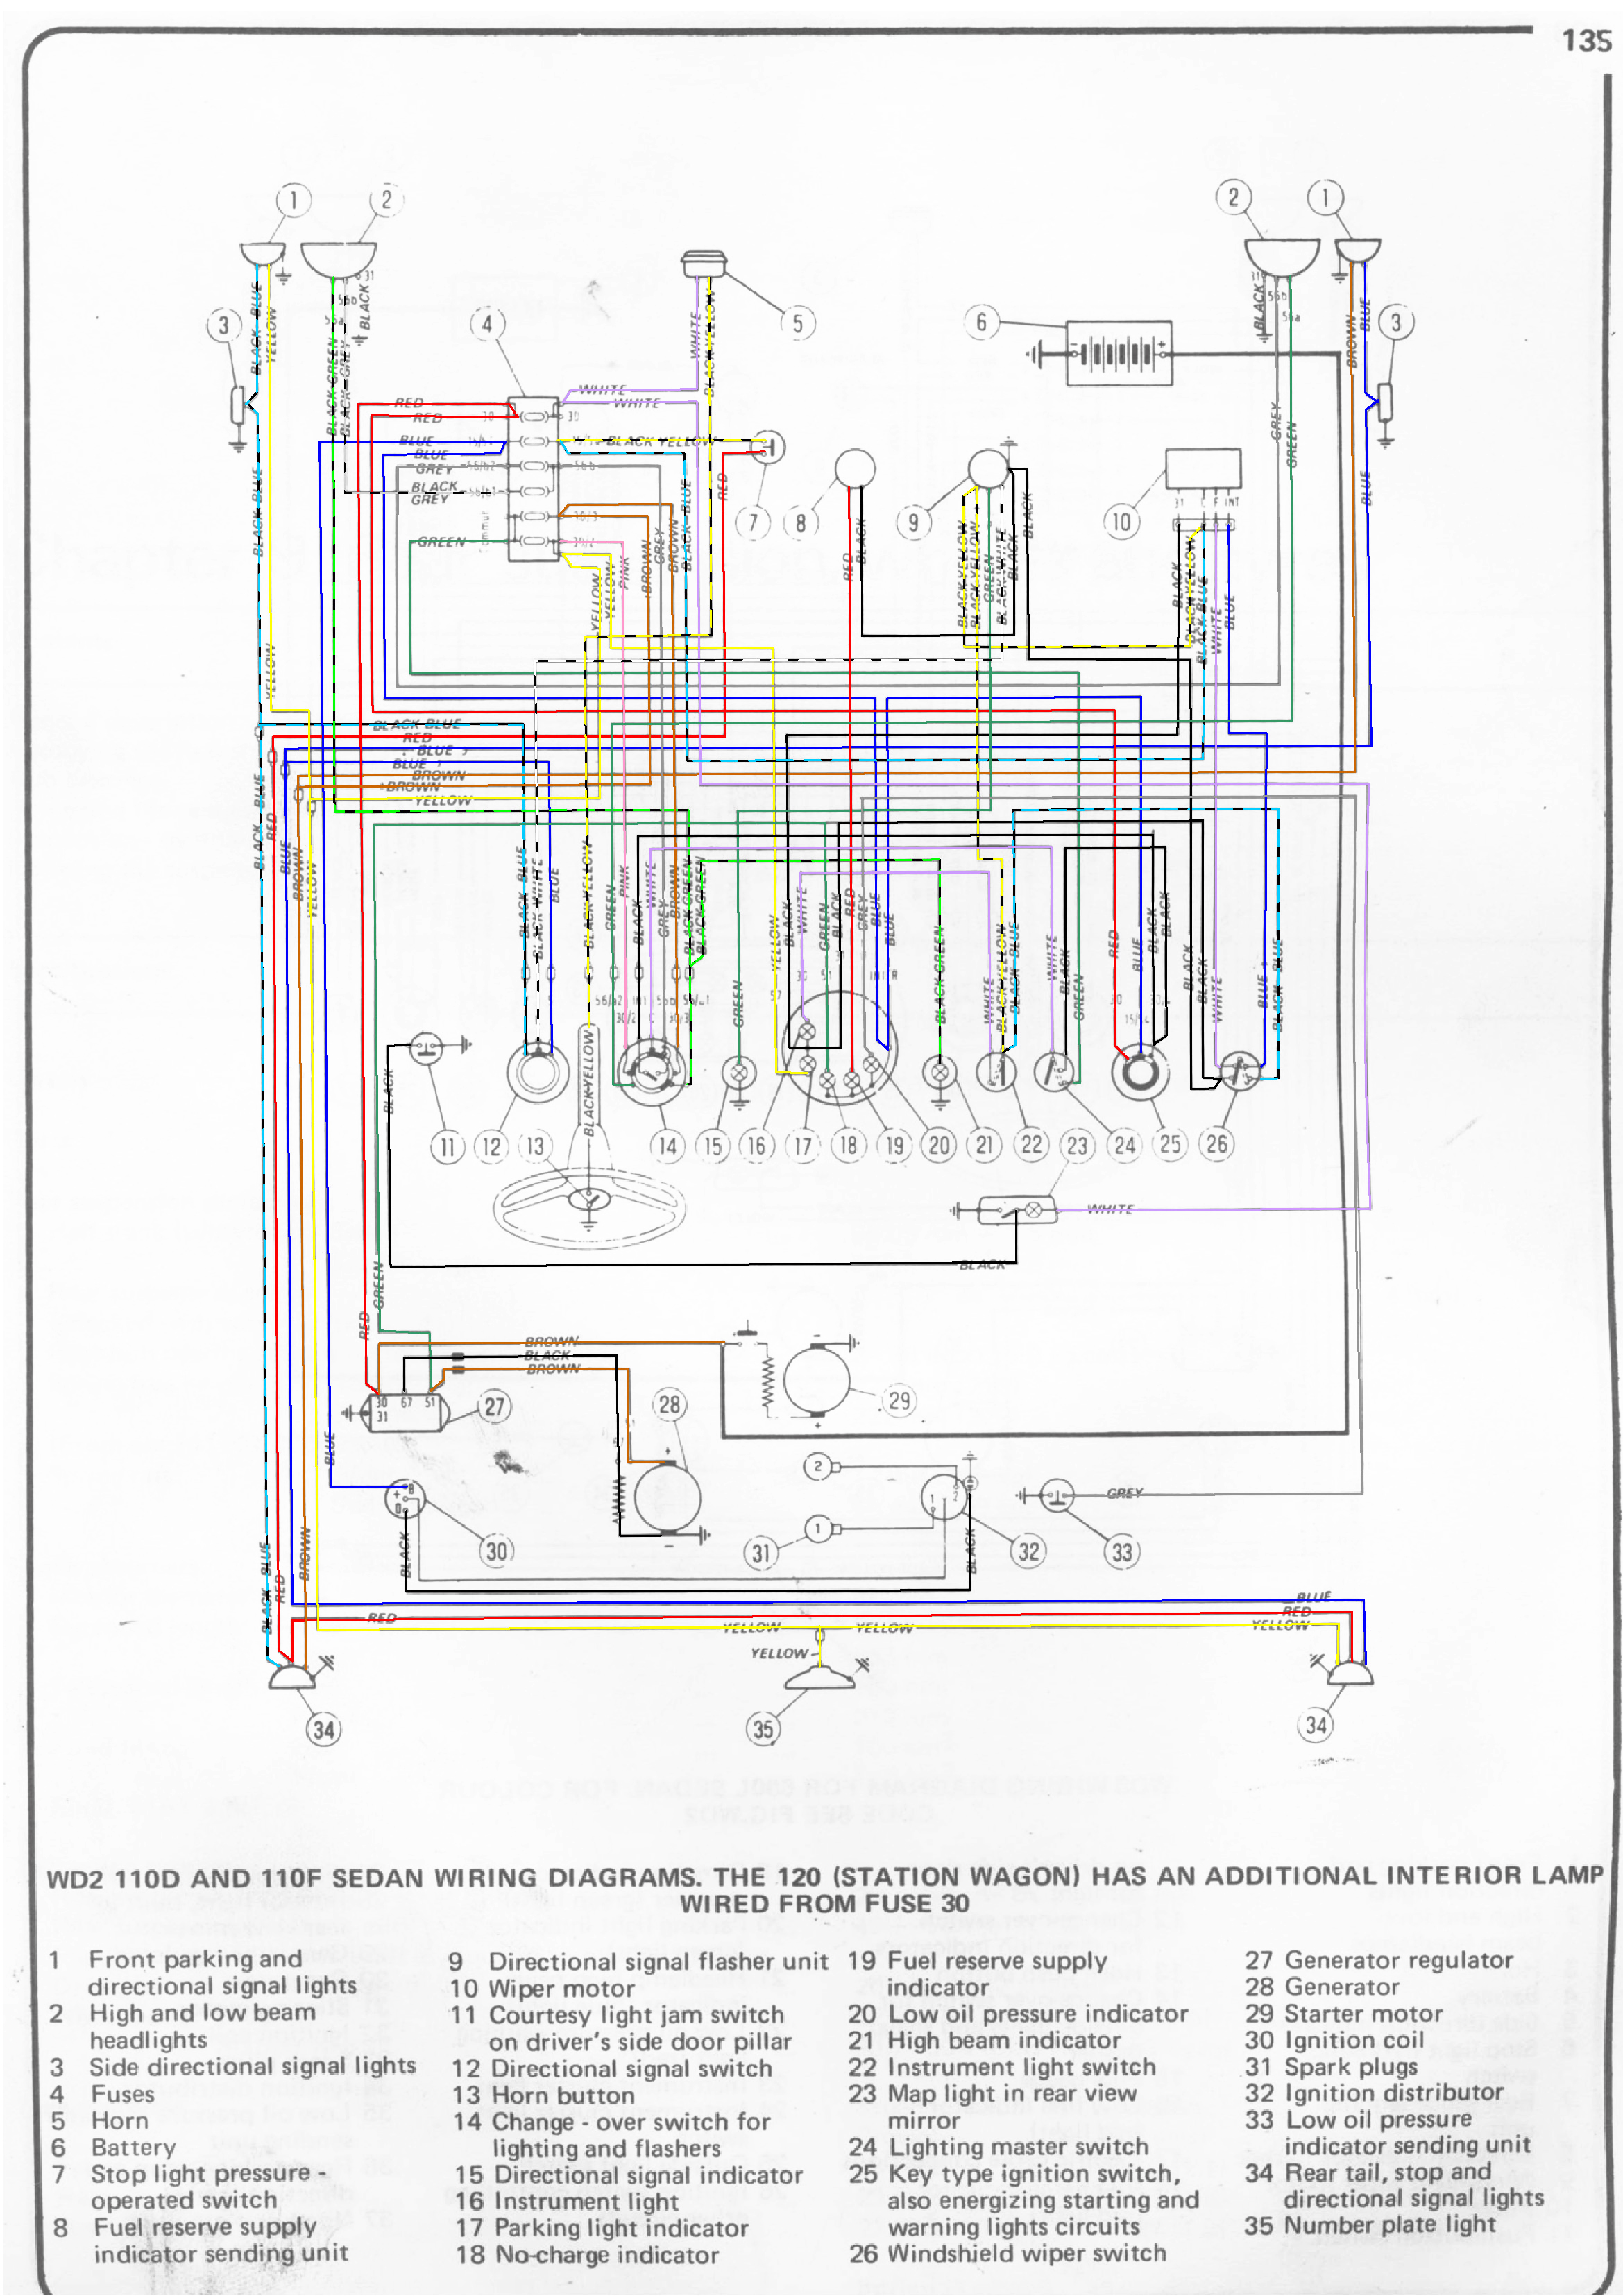 Fiat+500+Wiring+Diagram?t\\\=1508407624 2012 fiat 500 wiring diagram 2012 fiat 500 wiring diagram \u2022 wiring fiat grande punto wiring diagram pdf at crackthecode.co